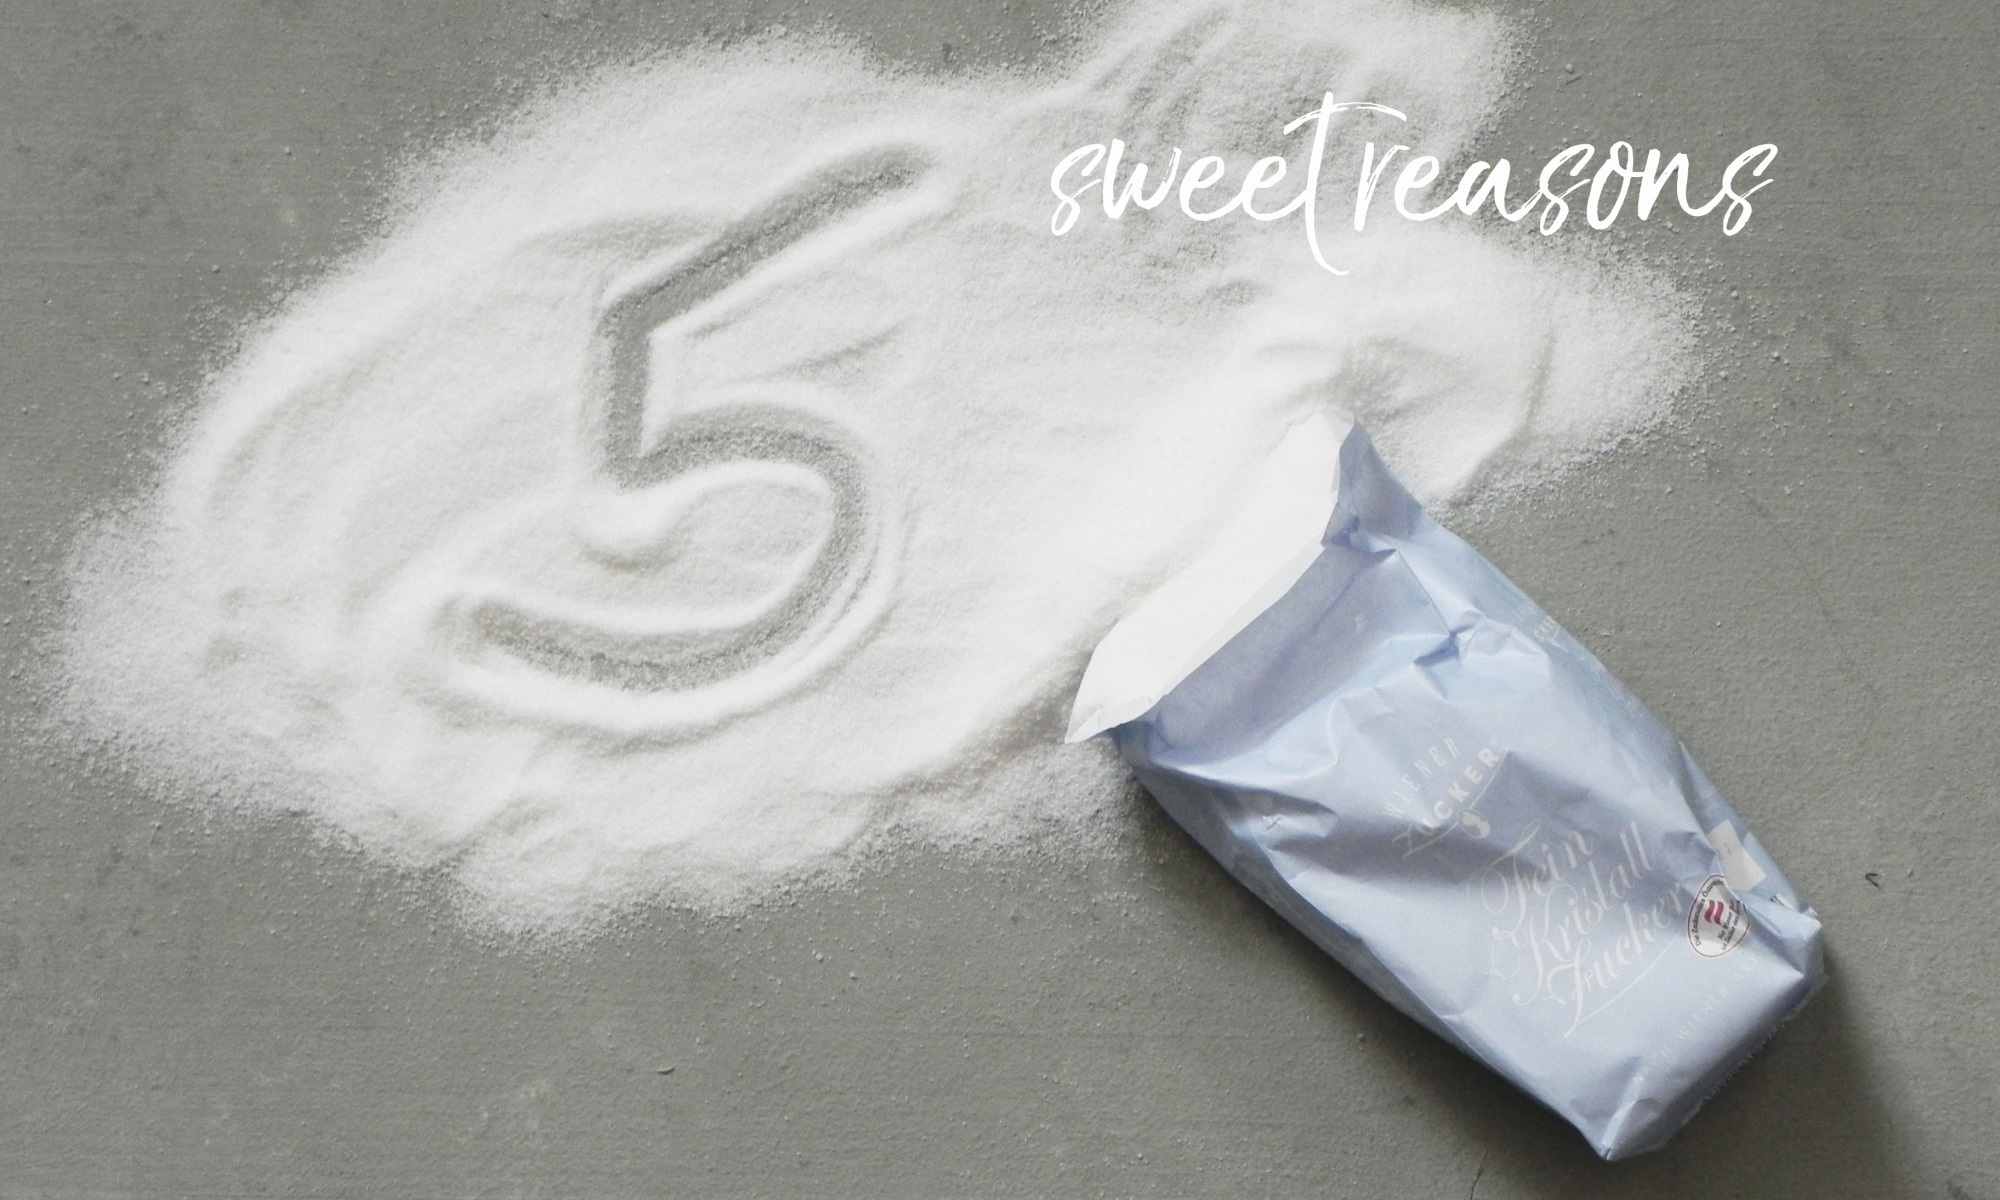 5 Sweet Reasons